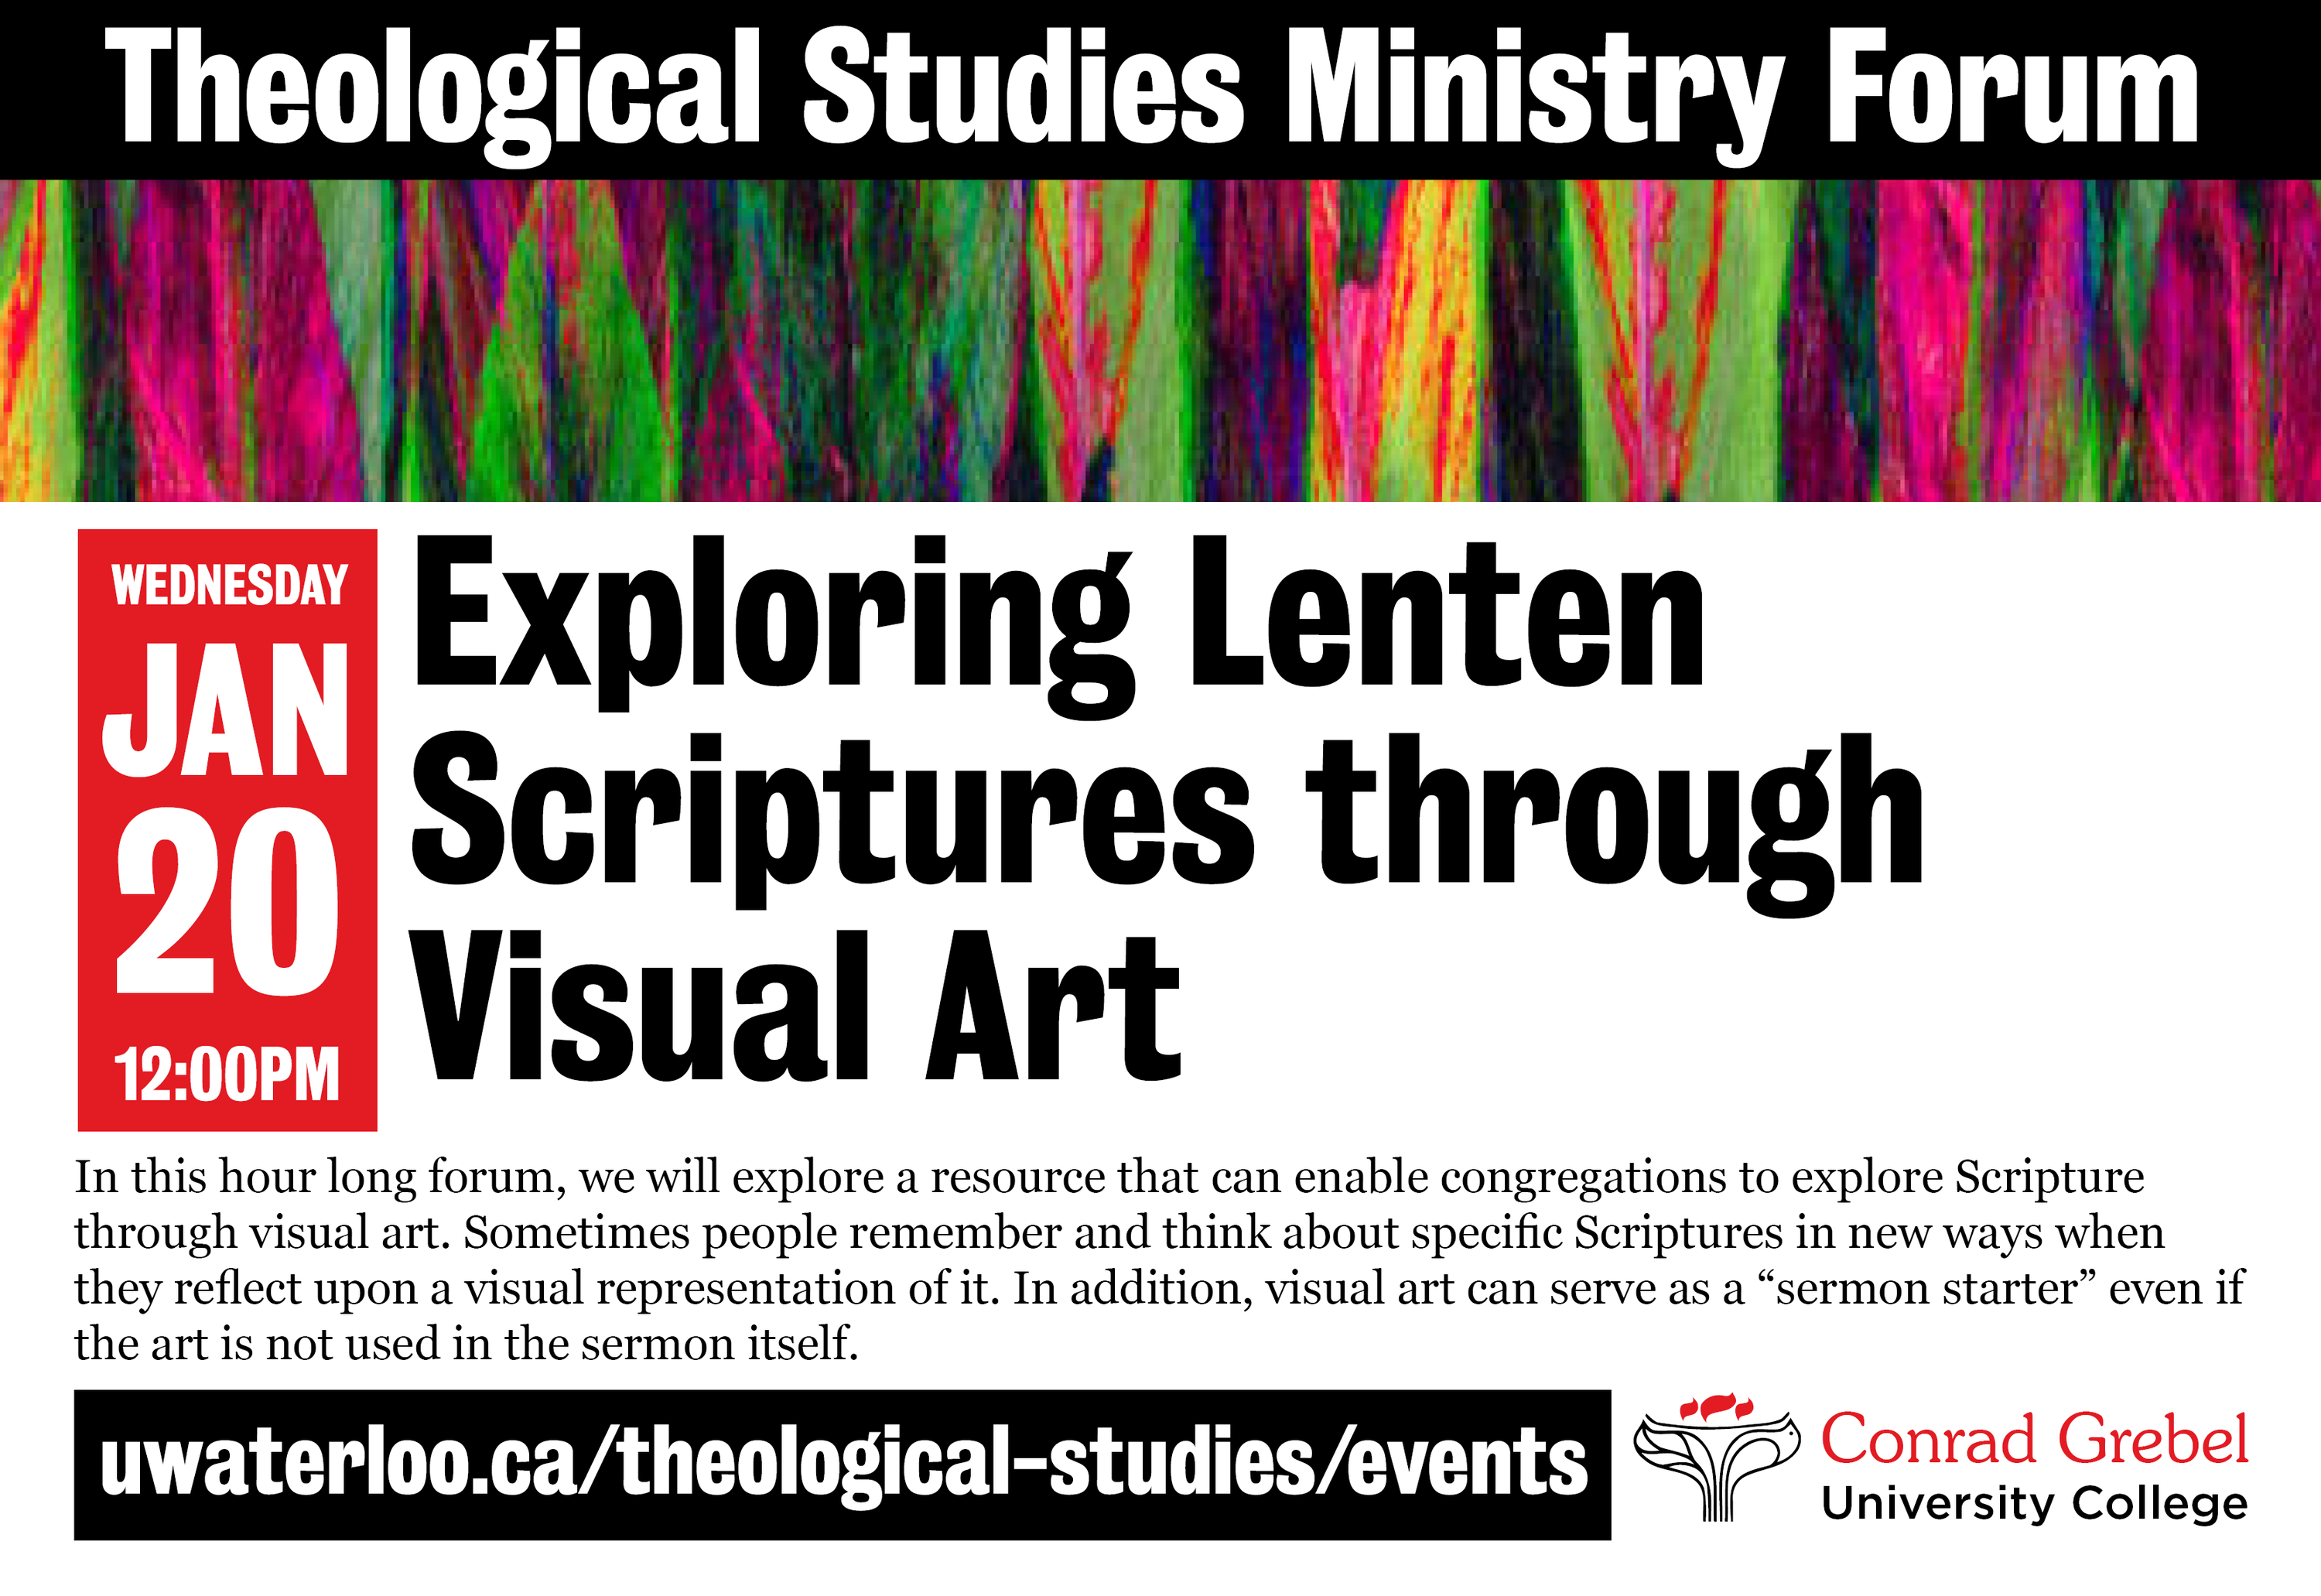 invitation to theological studies ministry forum event